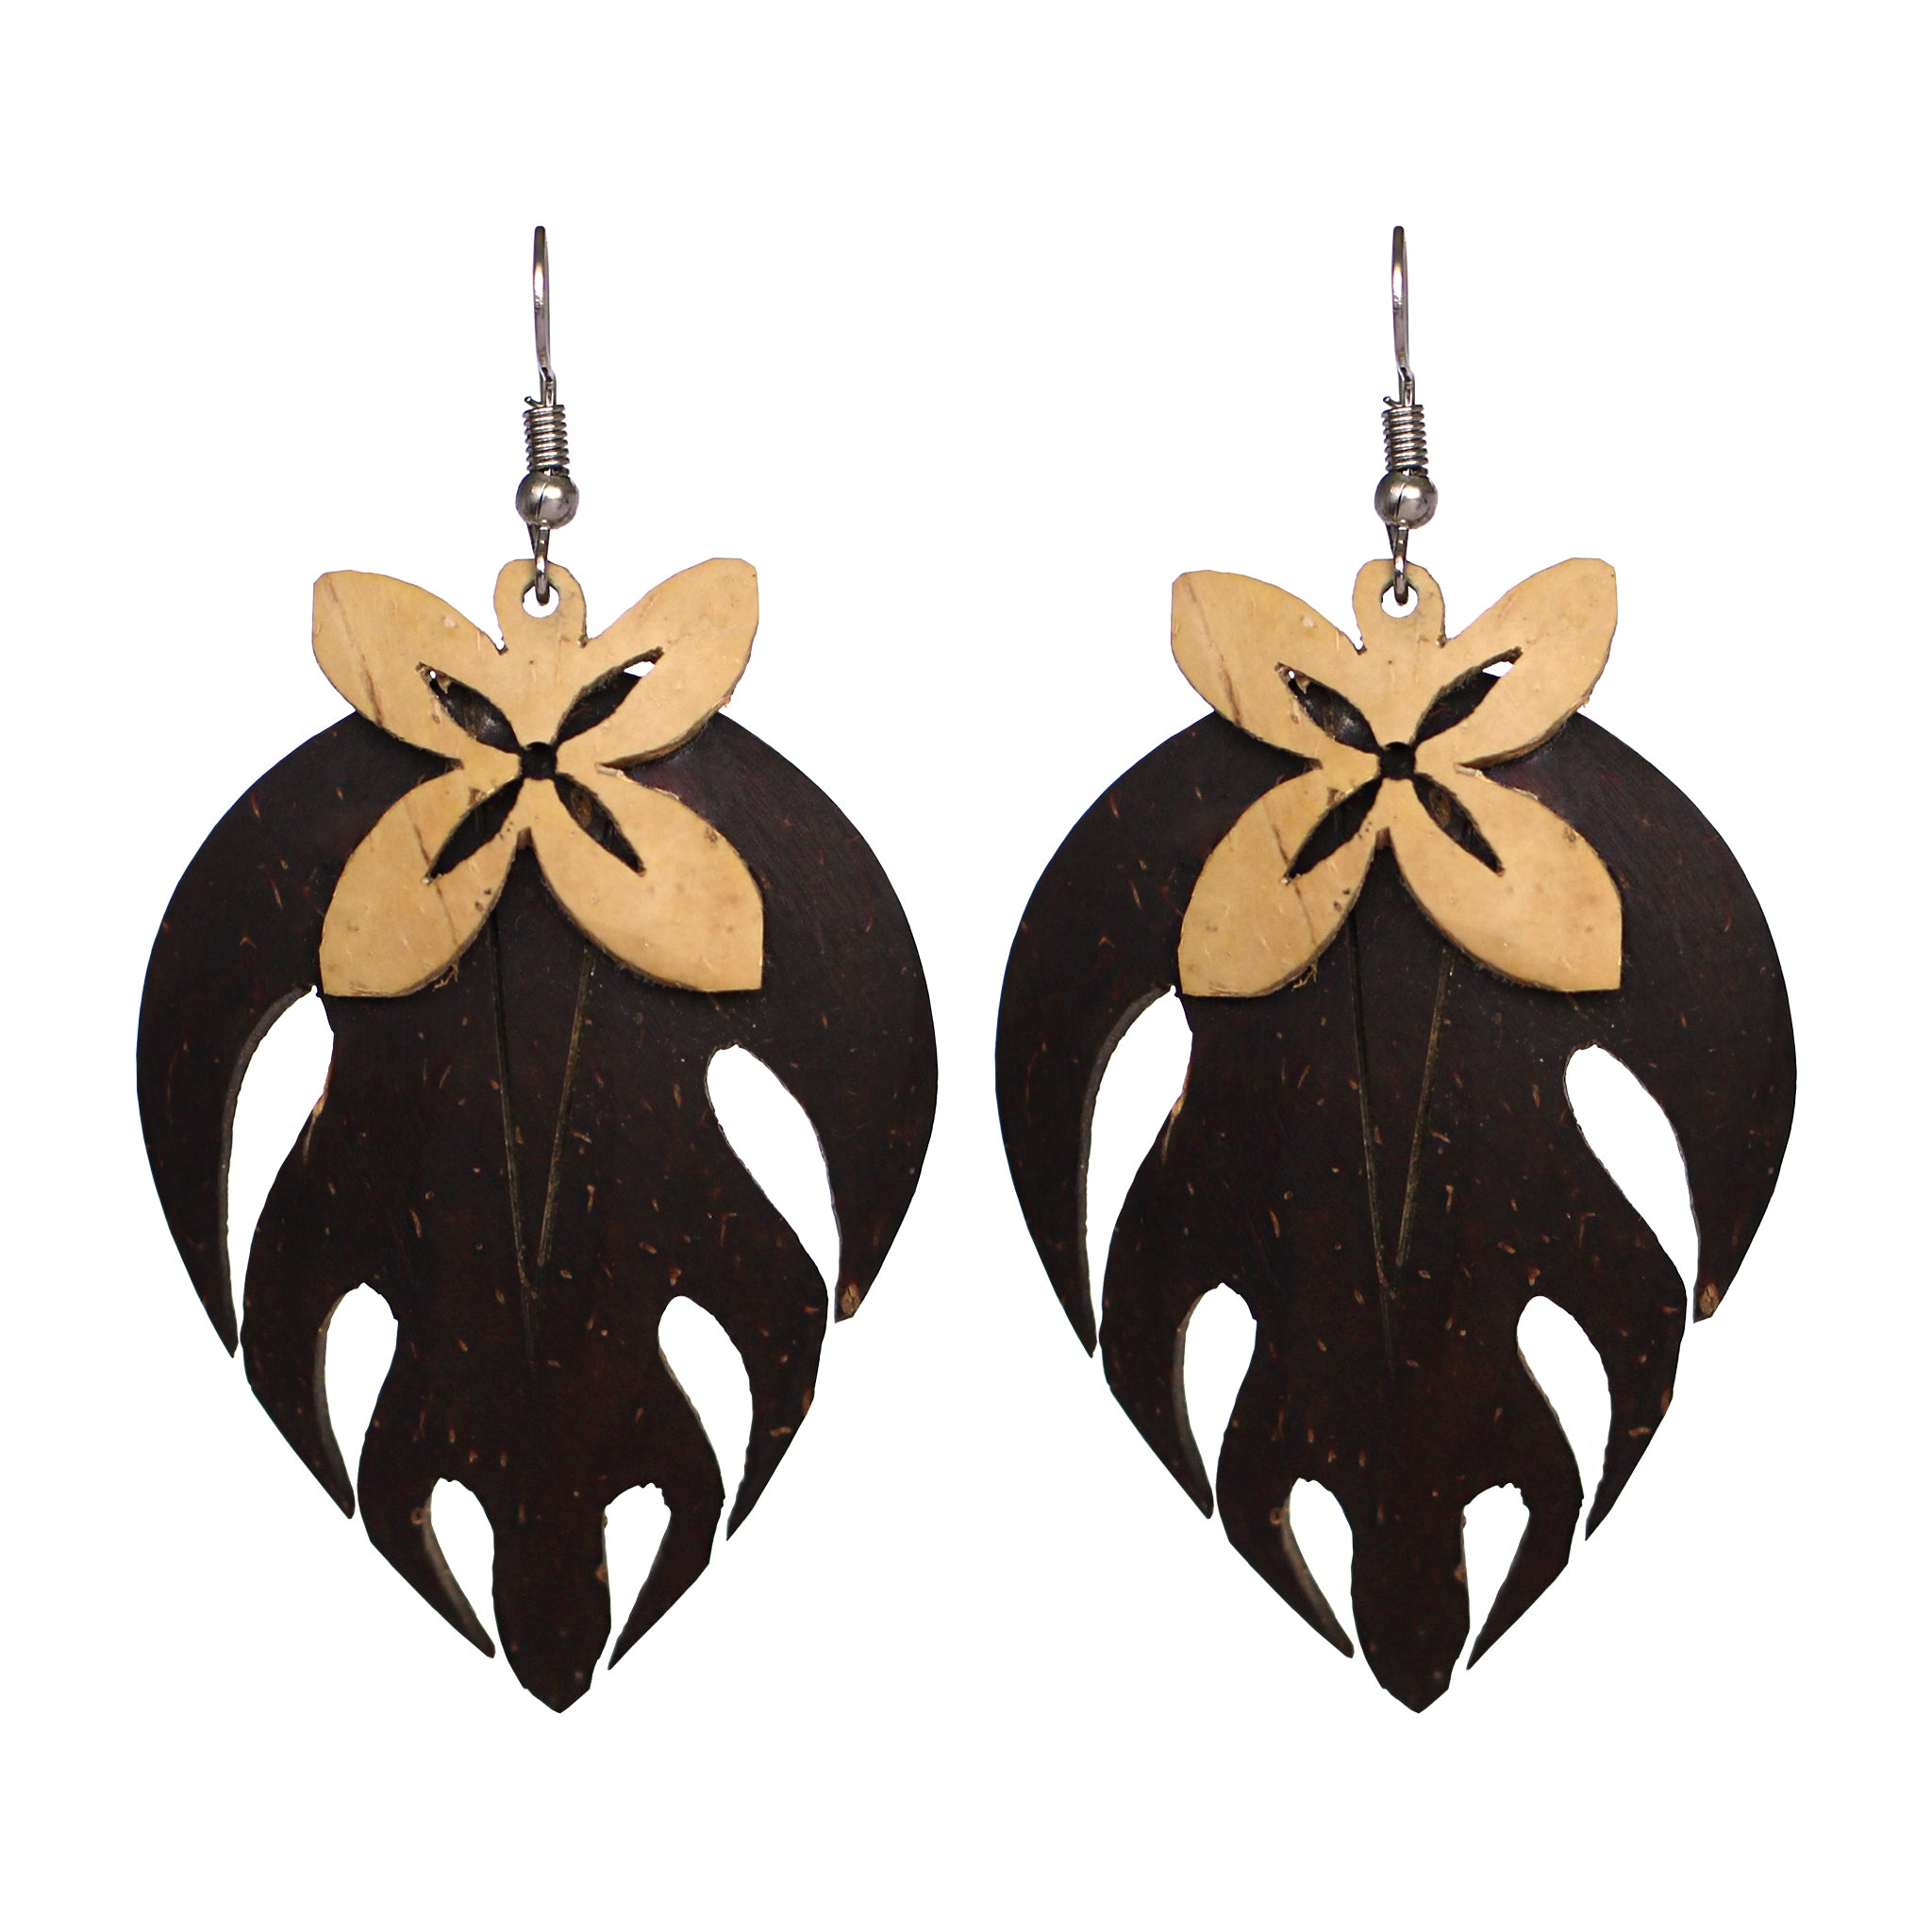 Coconut Earrings - Tapa Leaf